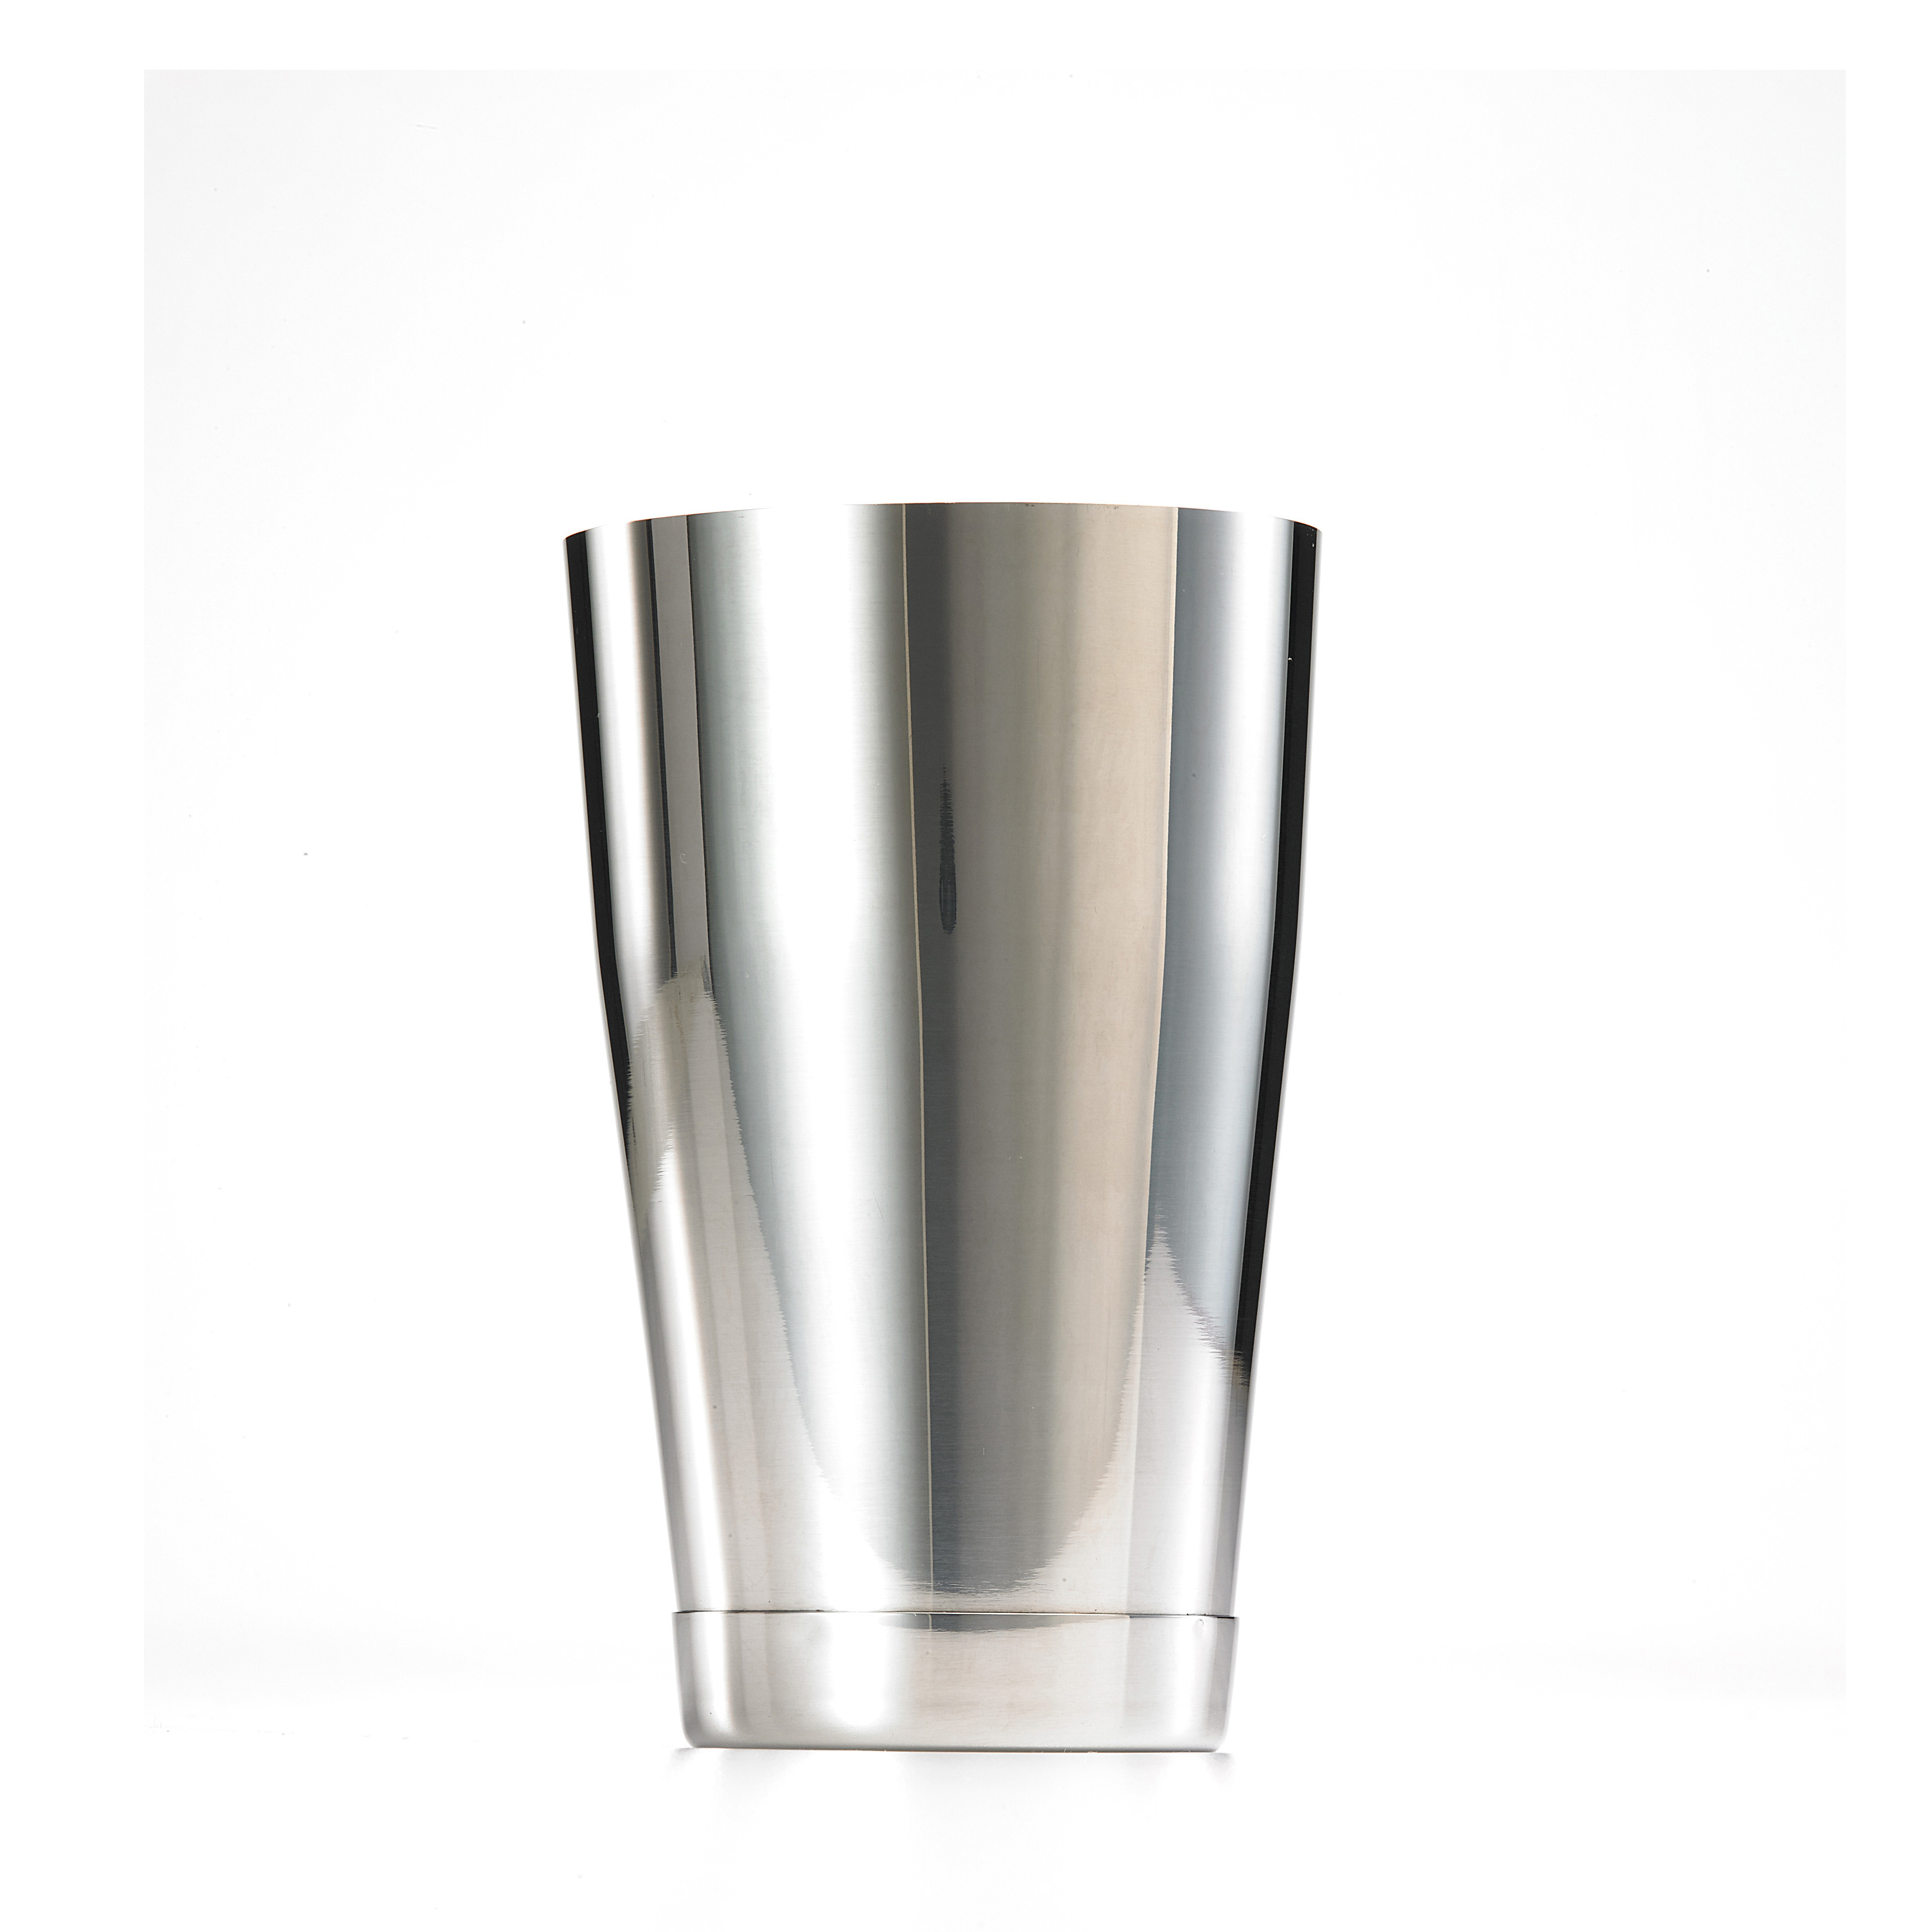 Barfly M37007 bar cocktail shaker